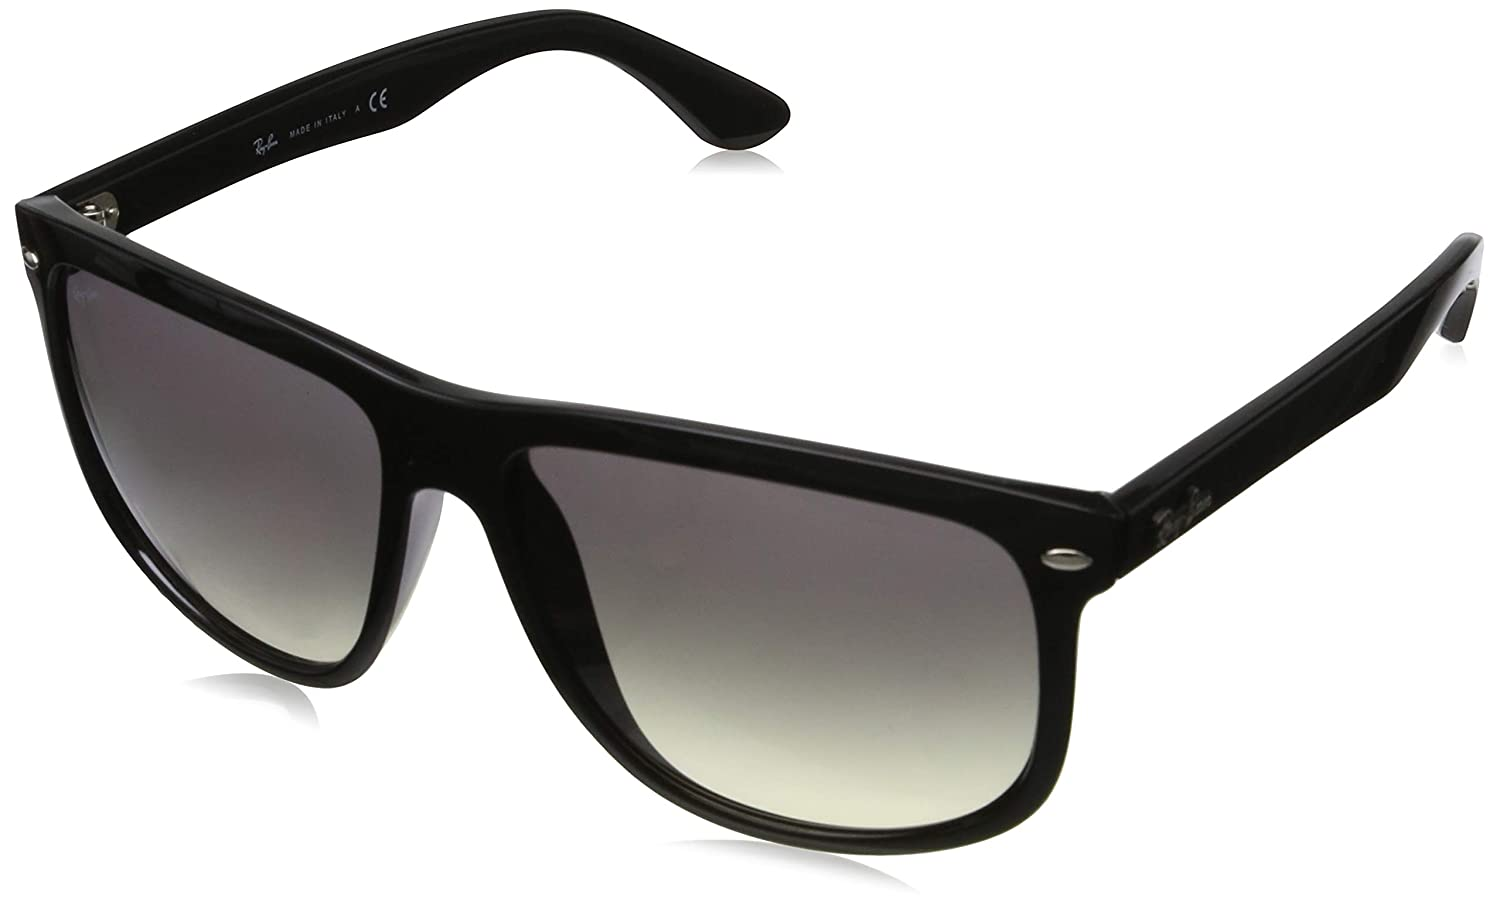 eab45e3089be0 Amazon.com  Ray-Ban RB4147 Sunglasses Color  Black Lens  Light Grey  Gradient